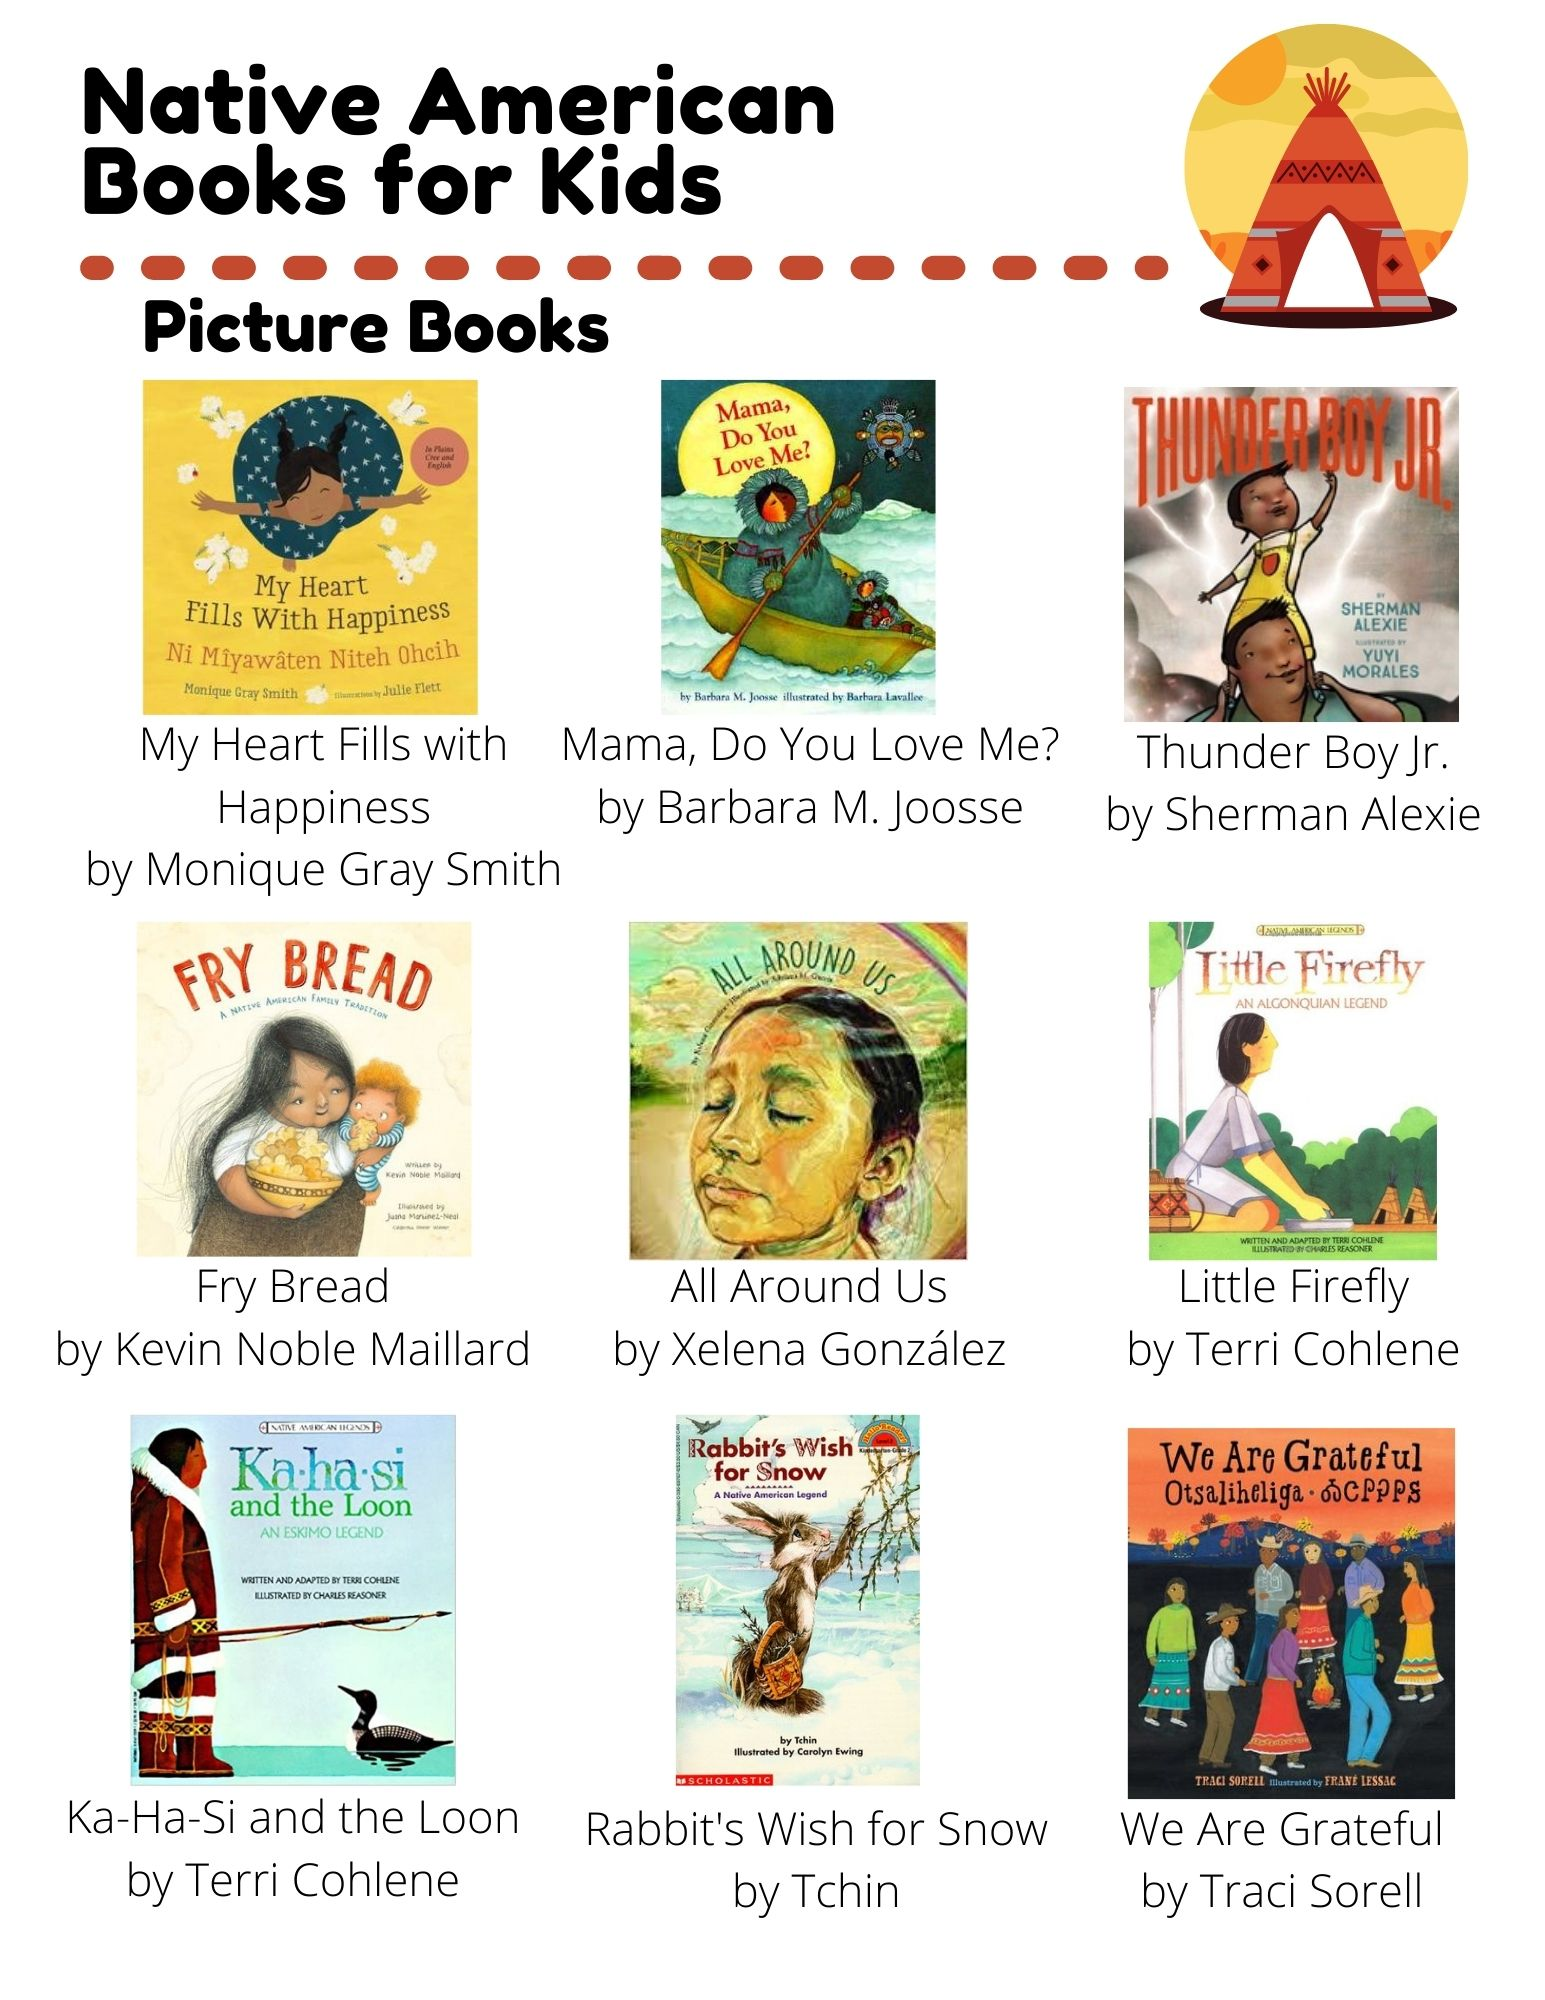 Native Americans: Picture Books: My Heart Fills with Happiness by Monique Gray Smith, Mama, Do You Love Me? by Barbara M. Joosse, Thunder Boy Jr. by Sherman Alexie, Fry Bread by Kevin Noble Maillard, All Around Us by Xelena González, Little Firefly by Terri Cohlene, Ka-Ha-Si and the Loon by Terri Cohlene, Rabbit's Wish for Snow by Tchin, We Are Grateful by Traci Sorell.  Chapter Books: Native American Heroes by Ann McGovern, The Birchbark House by Louise Erdrich, I Can Make This Promise by Christine Day, Meet Kaya by Janet Beeler Shaw, Enemy in the Fort by Sarah Masters Buckey. Non-Fiction: Red Cloud by S.D. Nelson, Before Columbus by Charles C. Mann, Welcome to Kaya's World 1764 by Dottie Raymer.